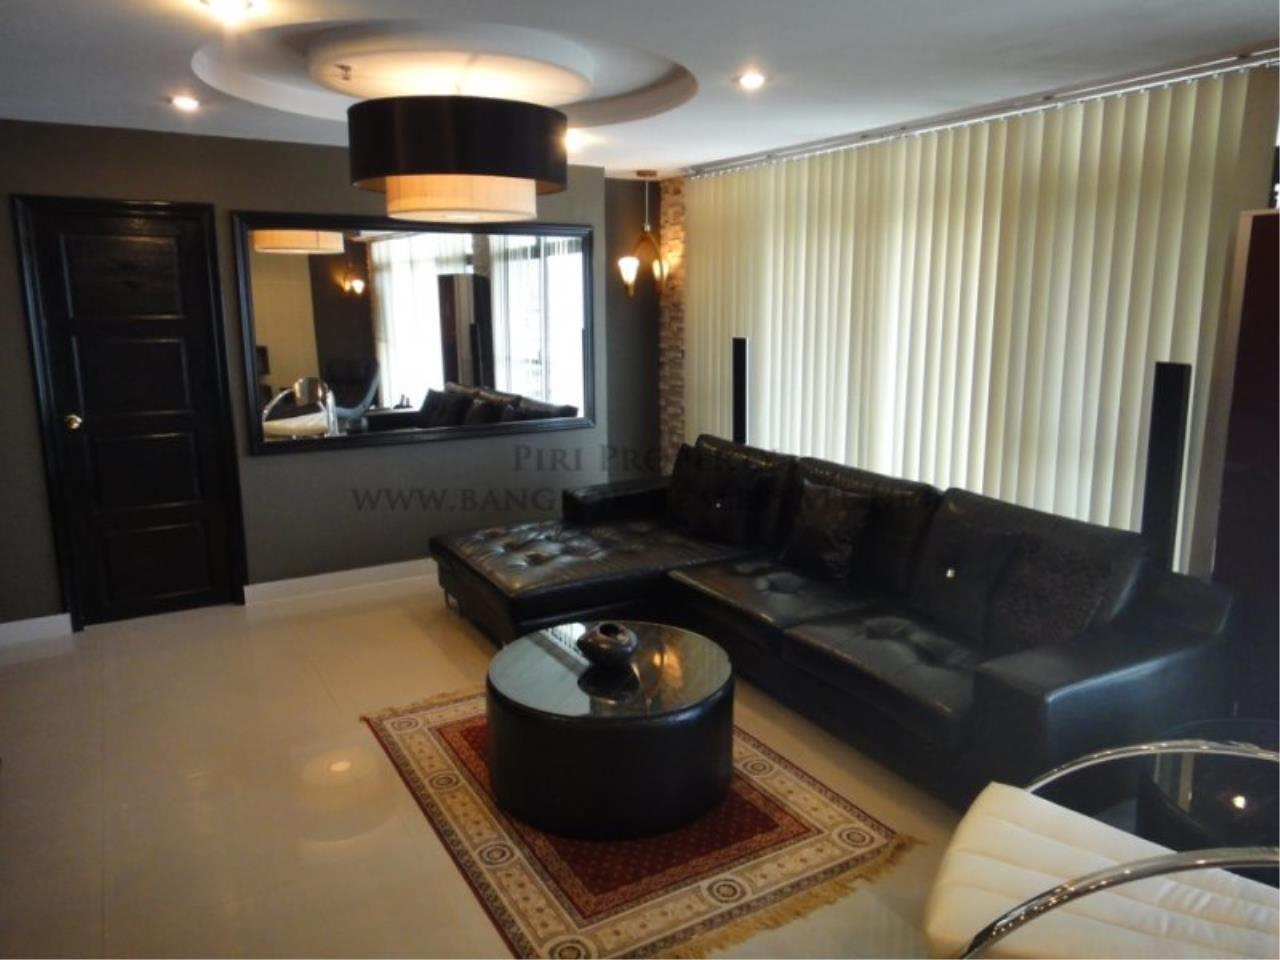 Piri Property Agency's Baan Phrom Phong - 2 Bedroom Condo for Sale - RENOVATED! 1